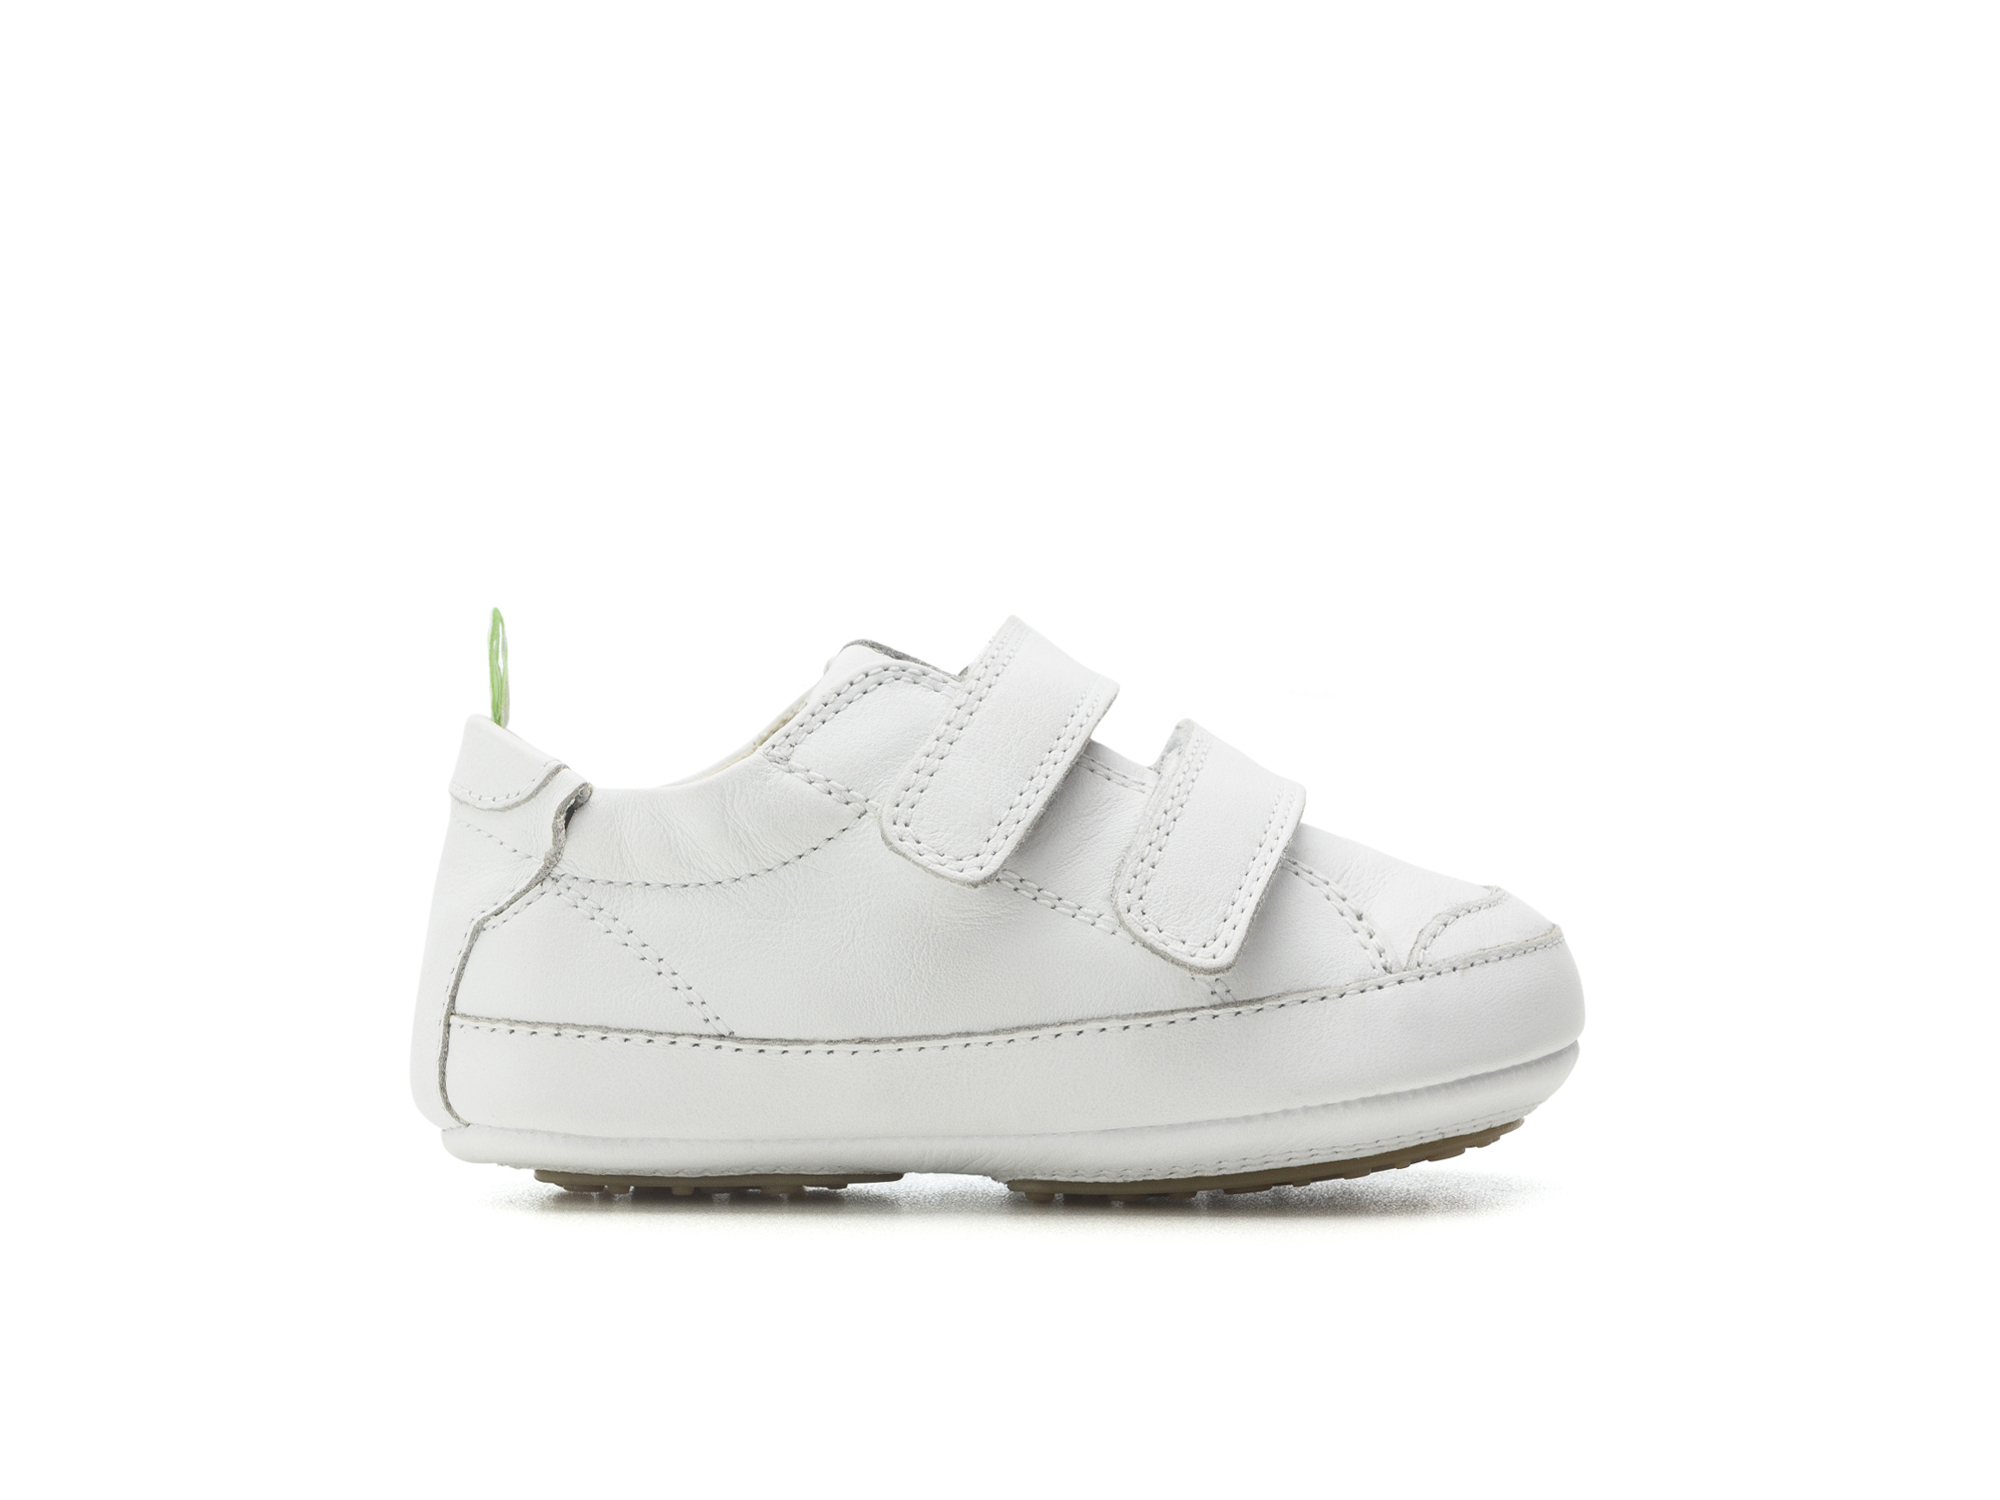 Tênis Bossy White/ White  Baby for ages 0 to 2 years - 1